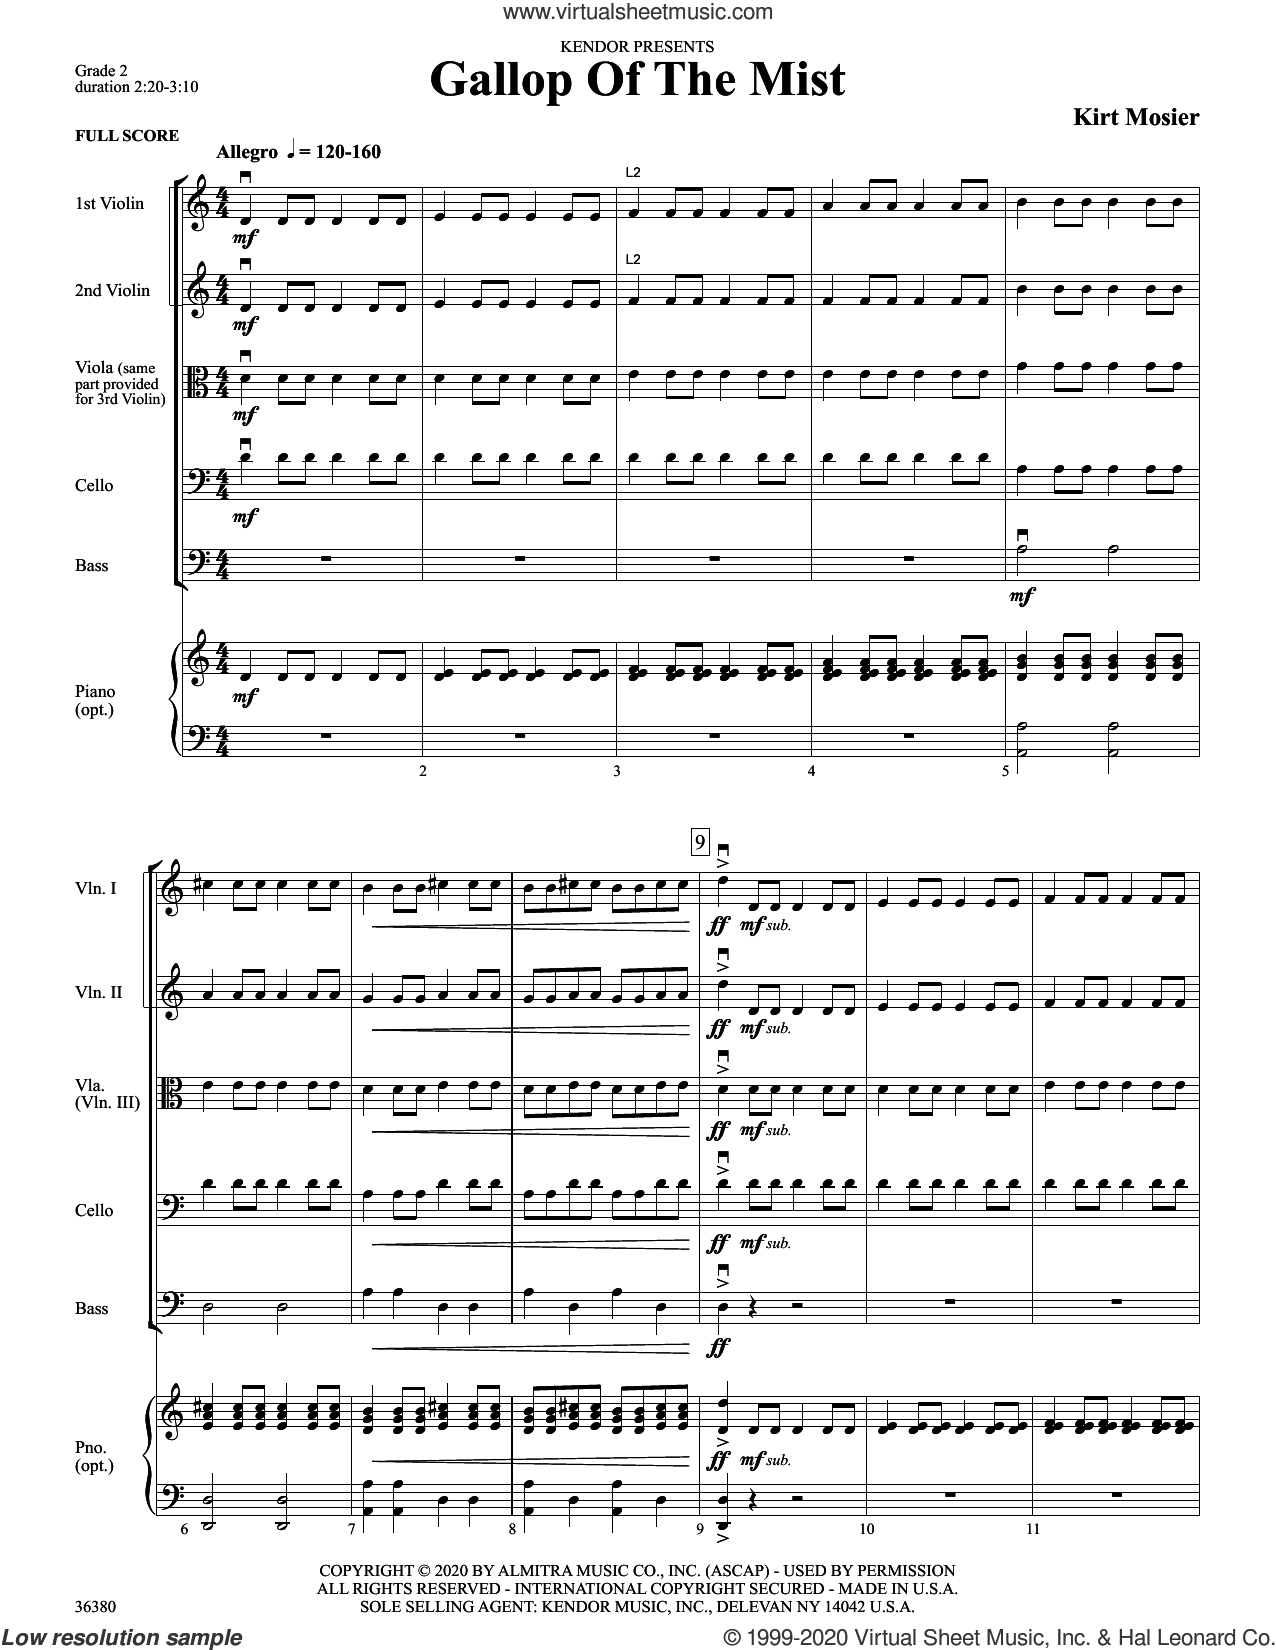 Gallop Of The Mist (COMPLETE) sheet music for orchestra by Kirt Mosier, intermediate skill level